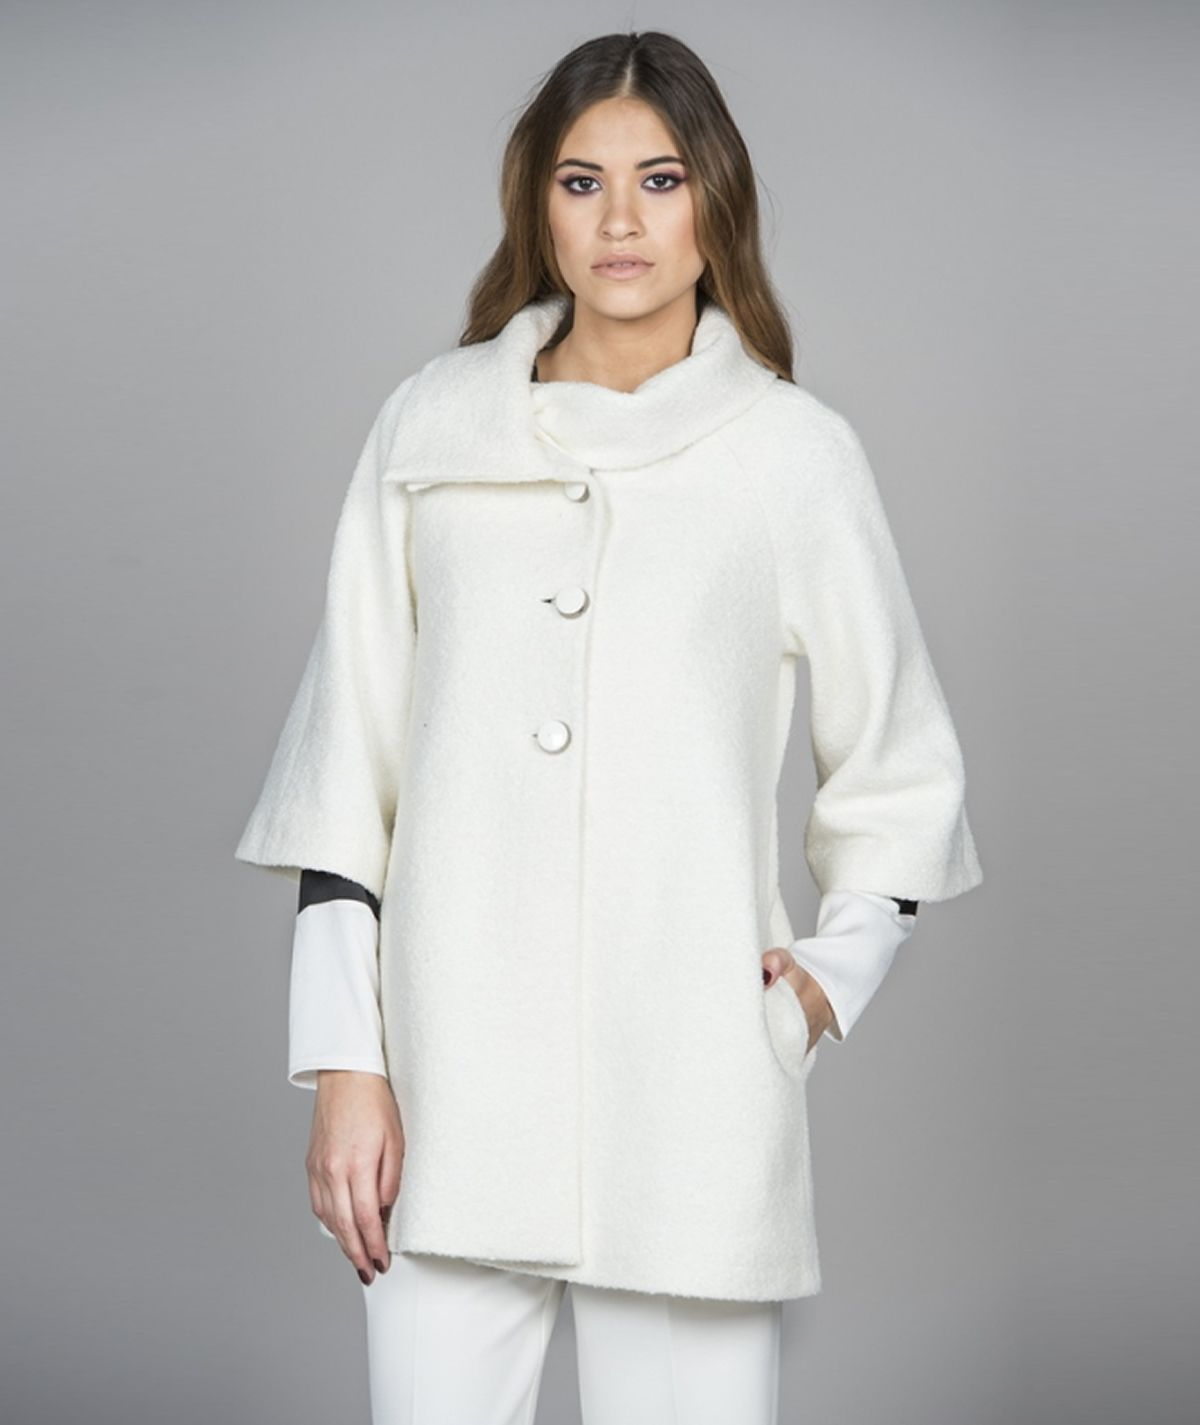 Coat with buttons and collar